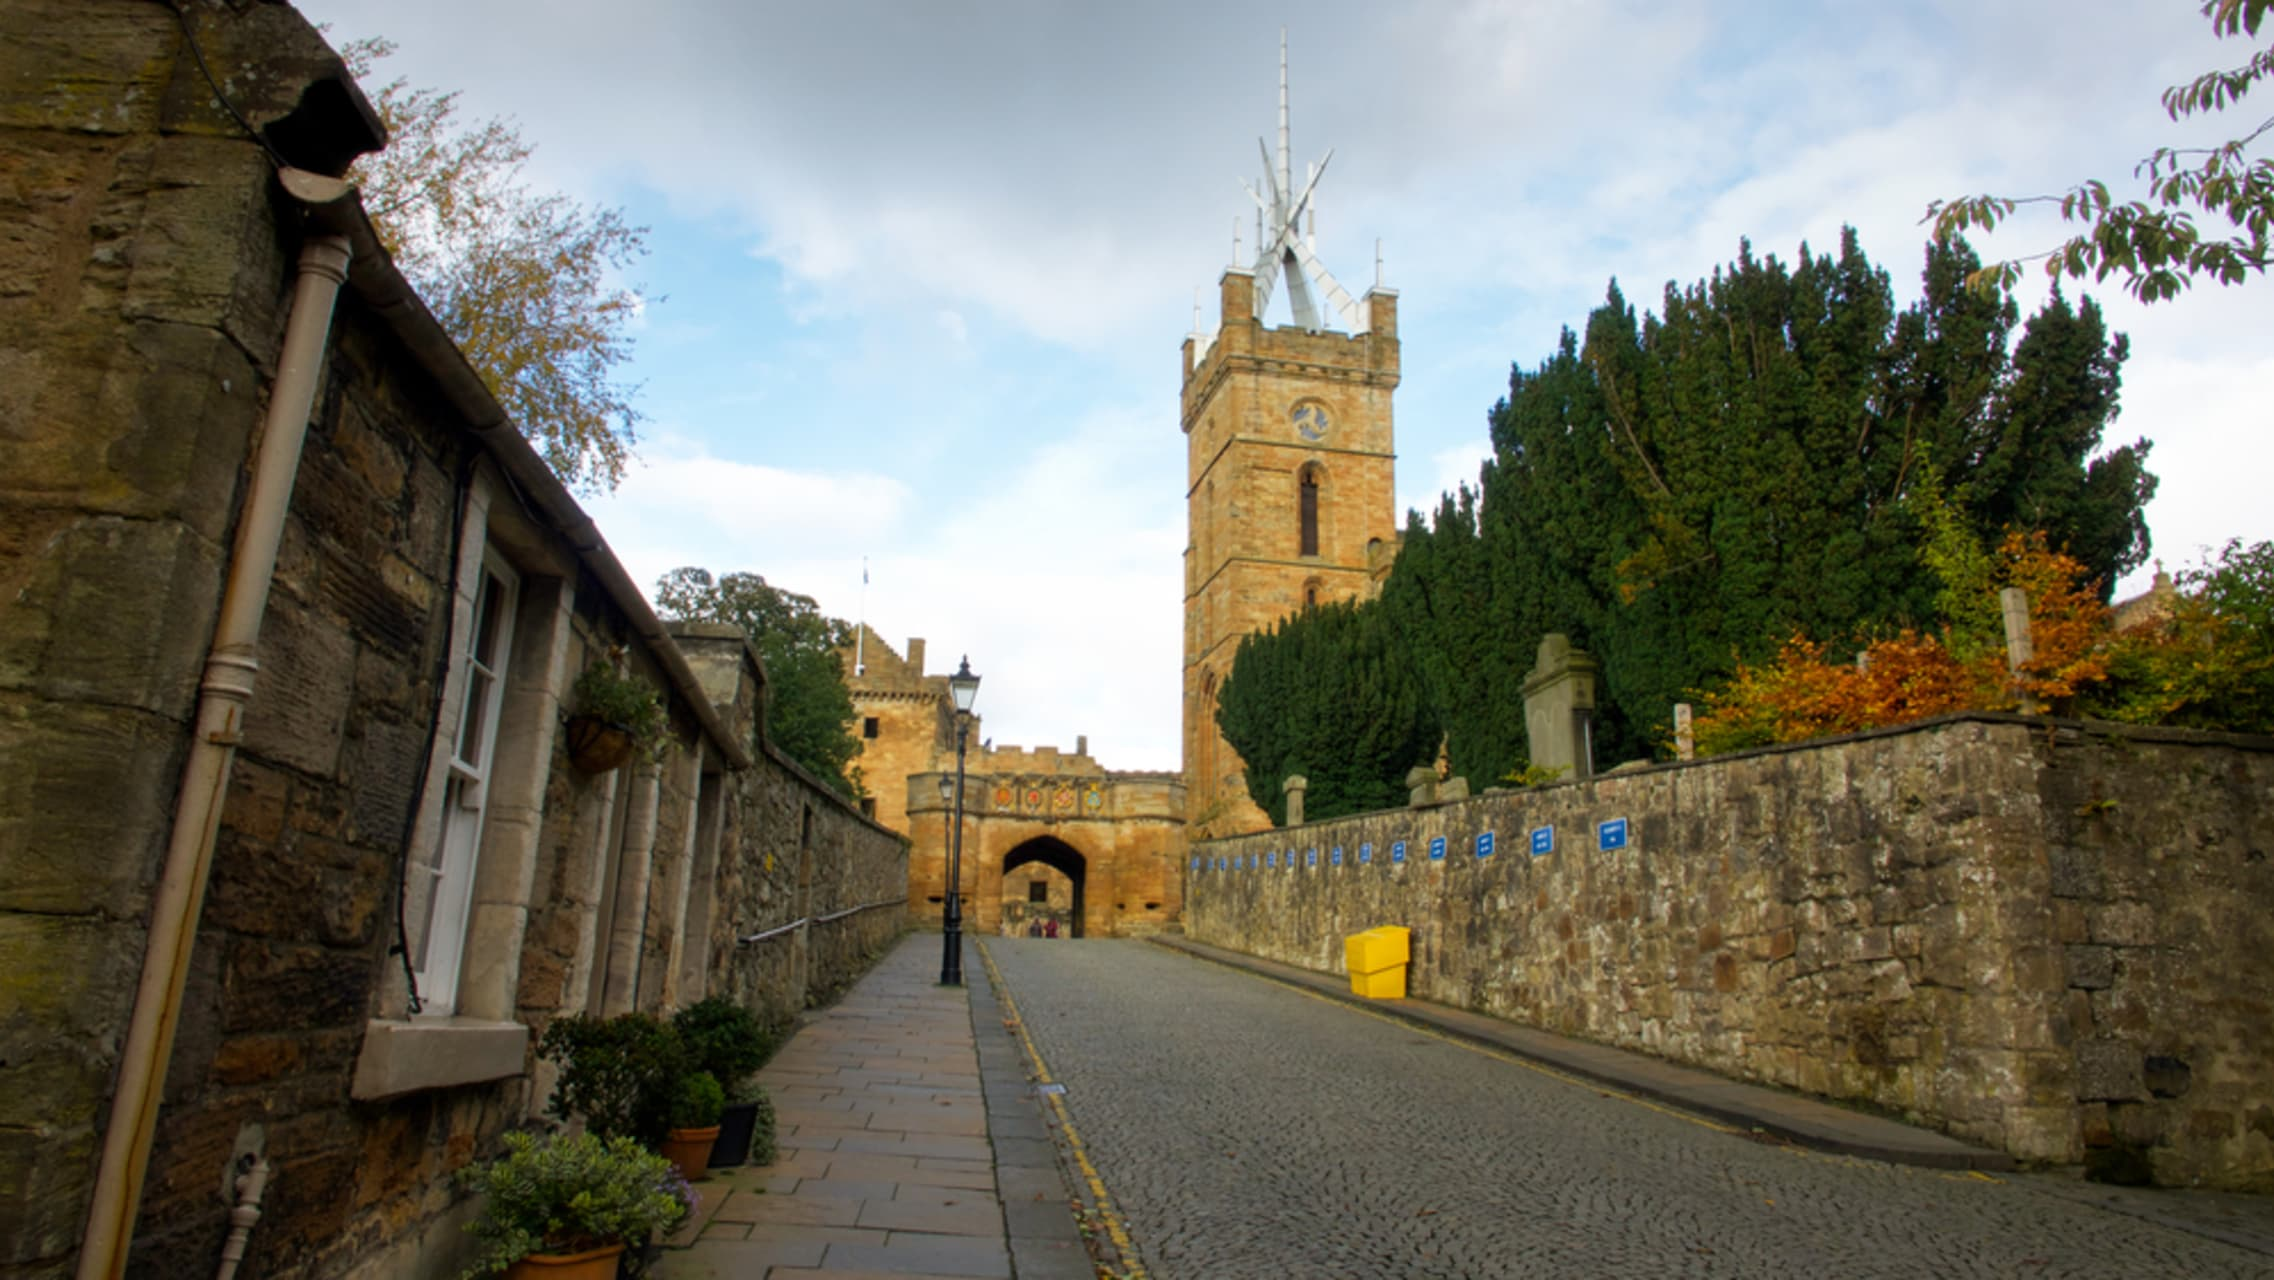 Central Scotland - Royal Burgh of Linlithgow: meander through an historic Scottish town